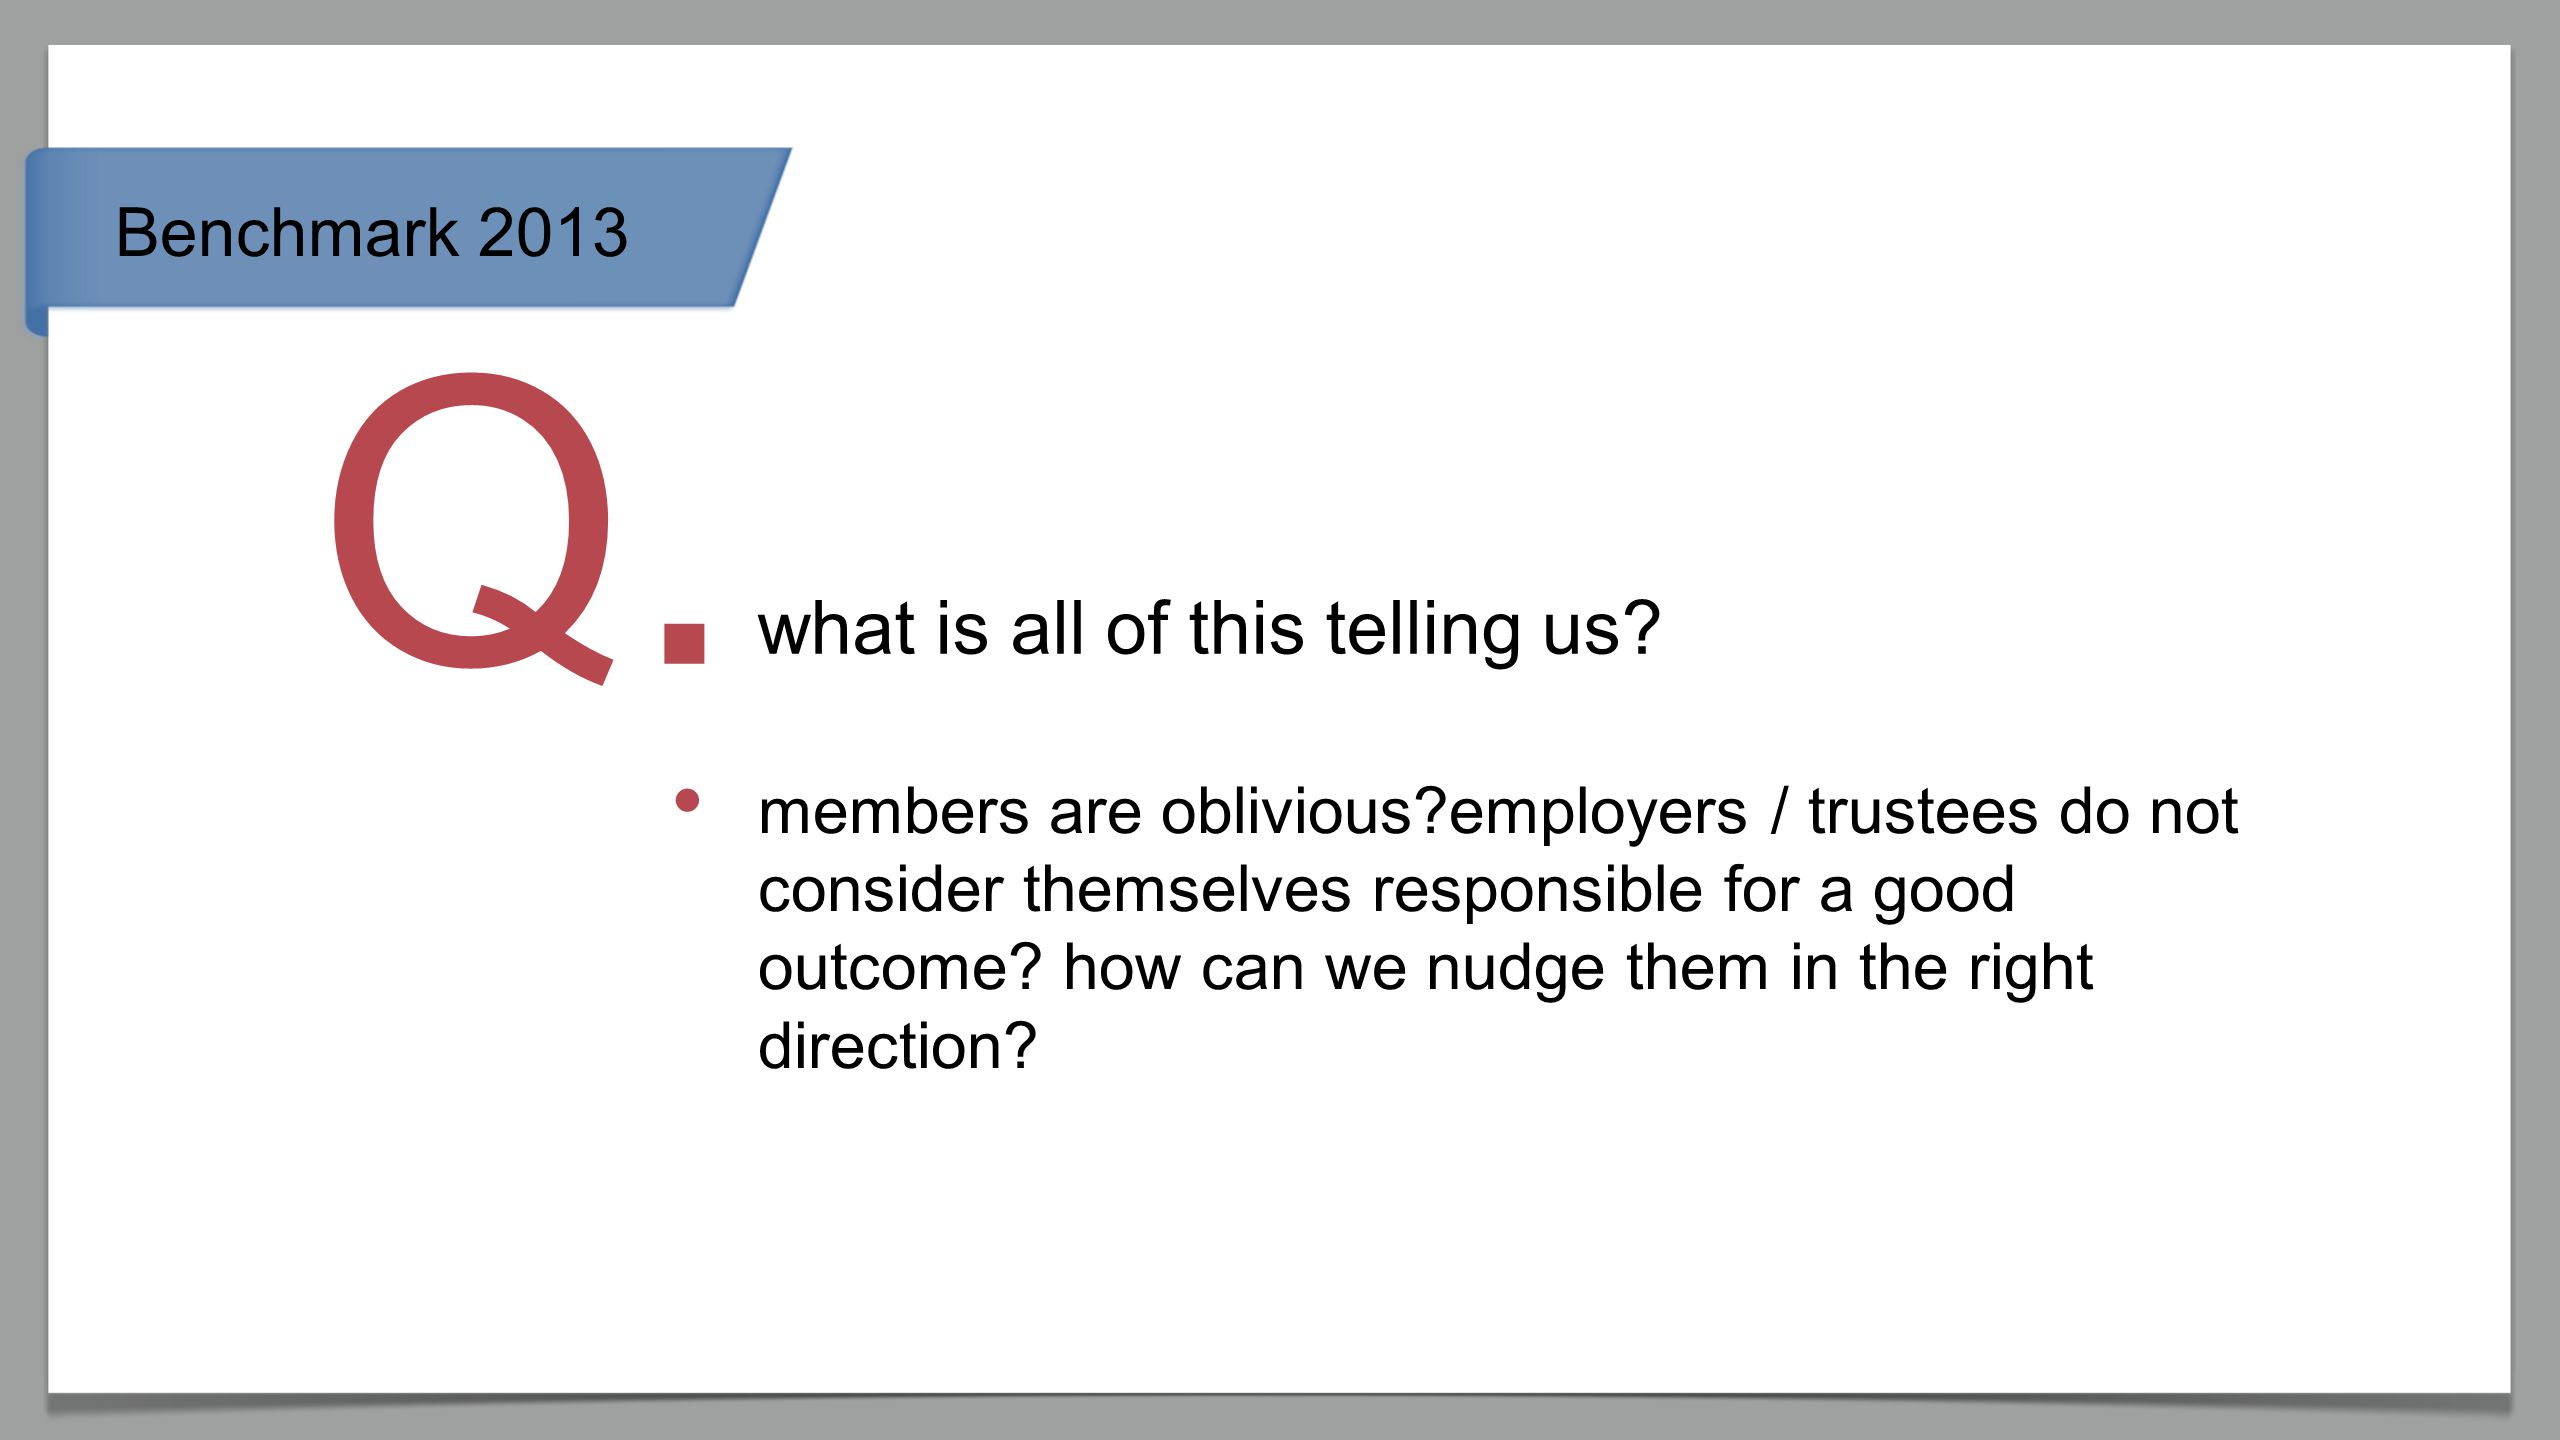 Benchmark 2013 what is all of this telling us? Q. members are oblivious?employers / trustees do not consider themselves responsible for a good outcome